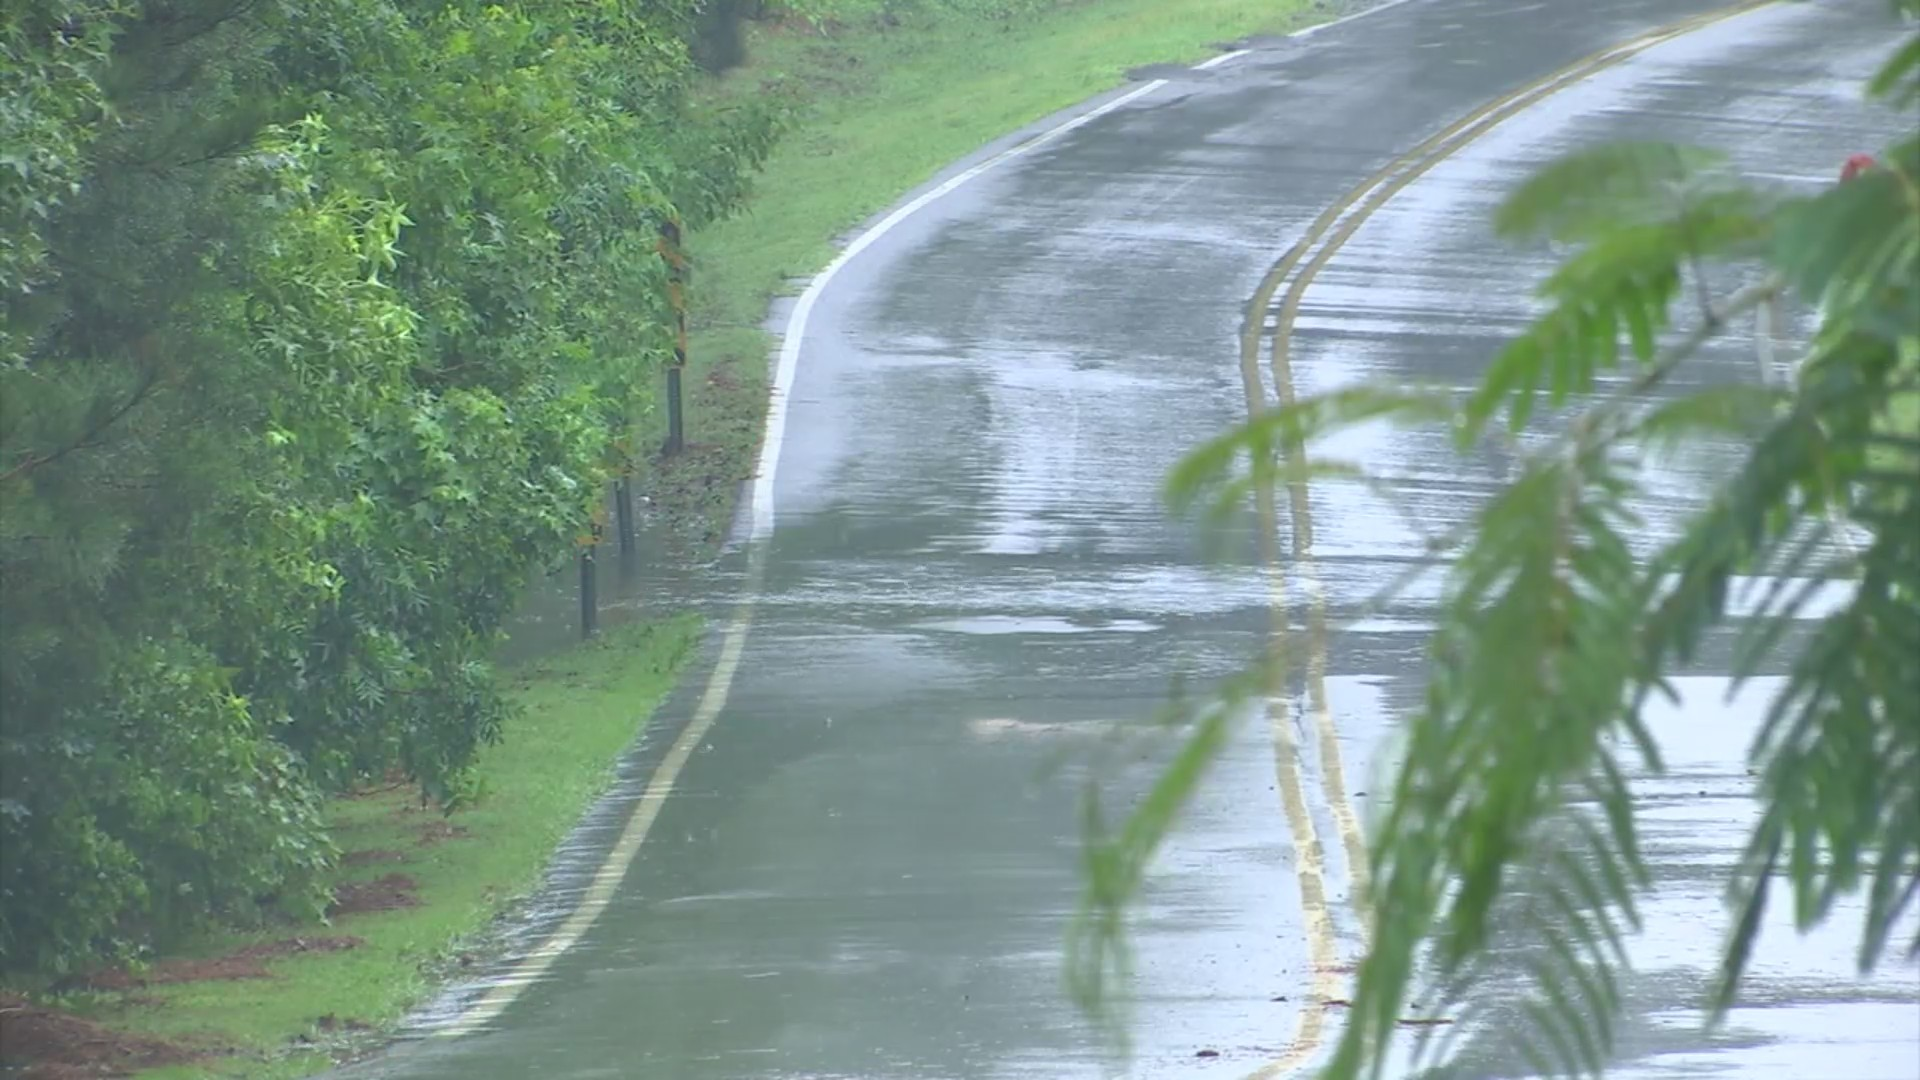 Heavy_rainfall__storms_forcing_roads_to__0_20190607210517